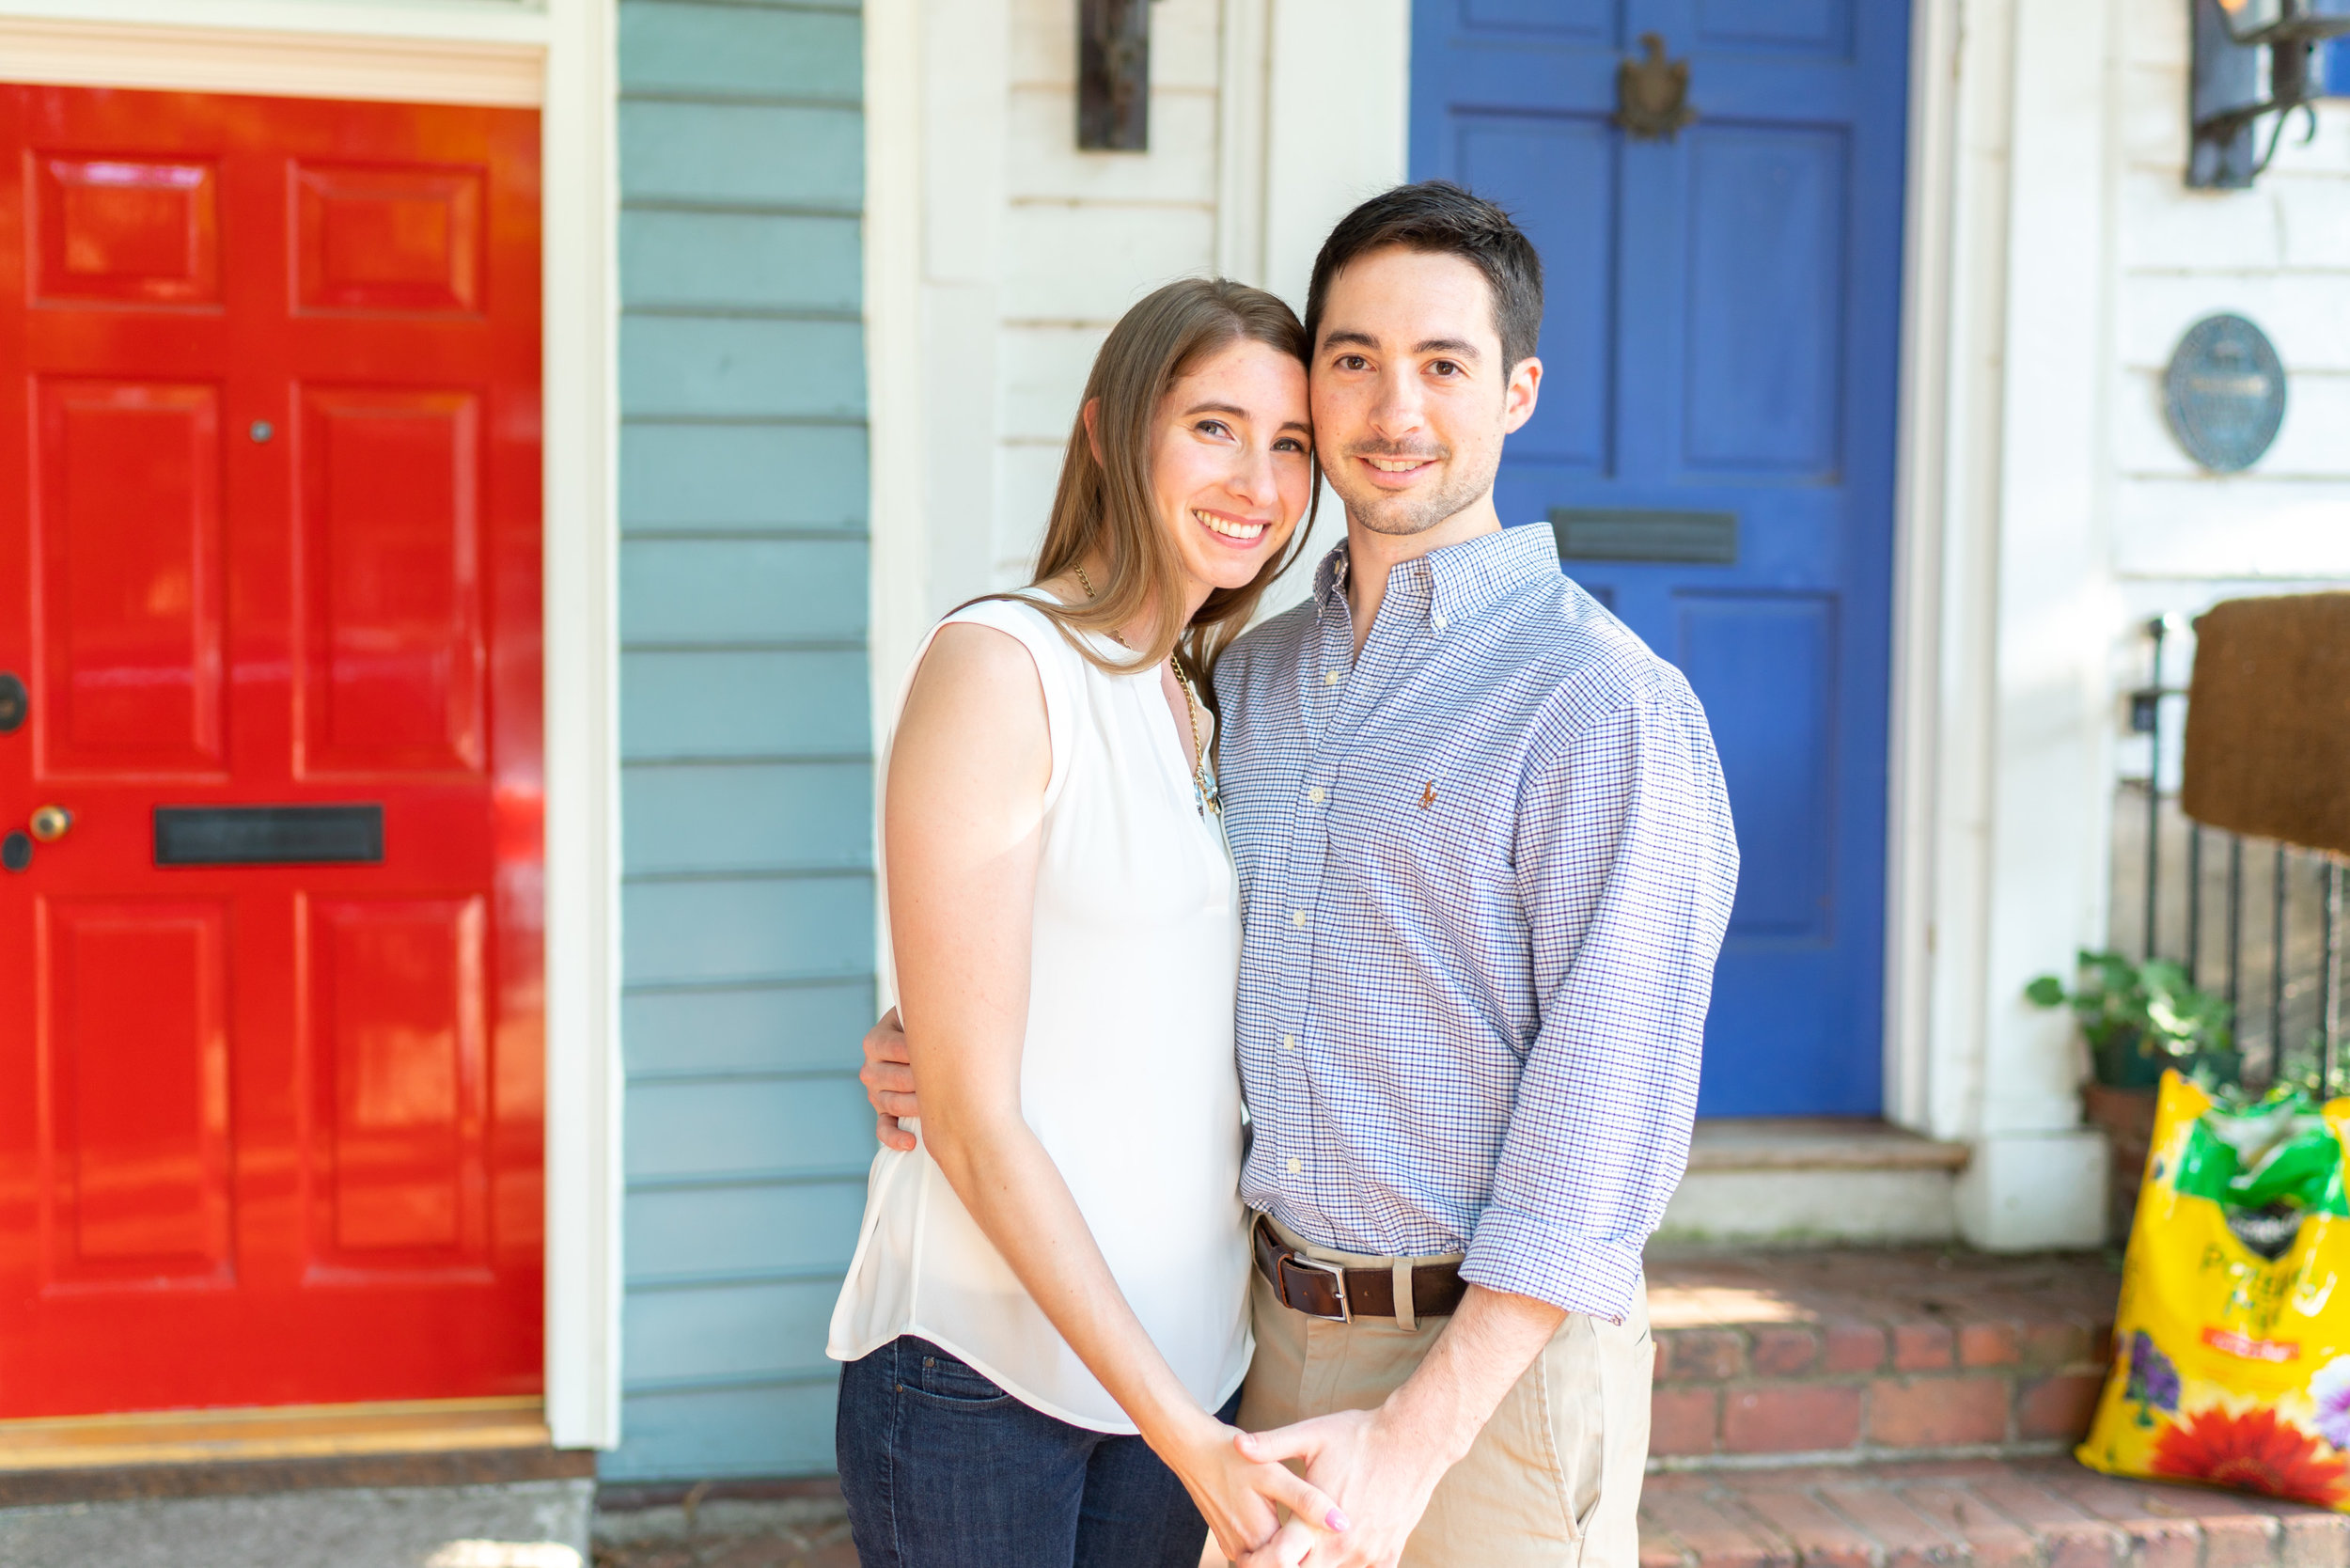 Colorful doors in Old Town Alexandria cobblestone streets engagement session